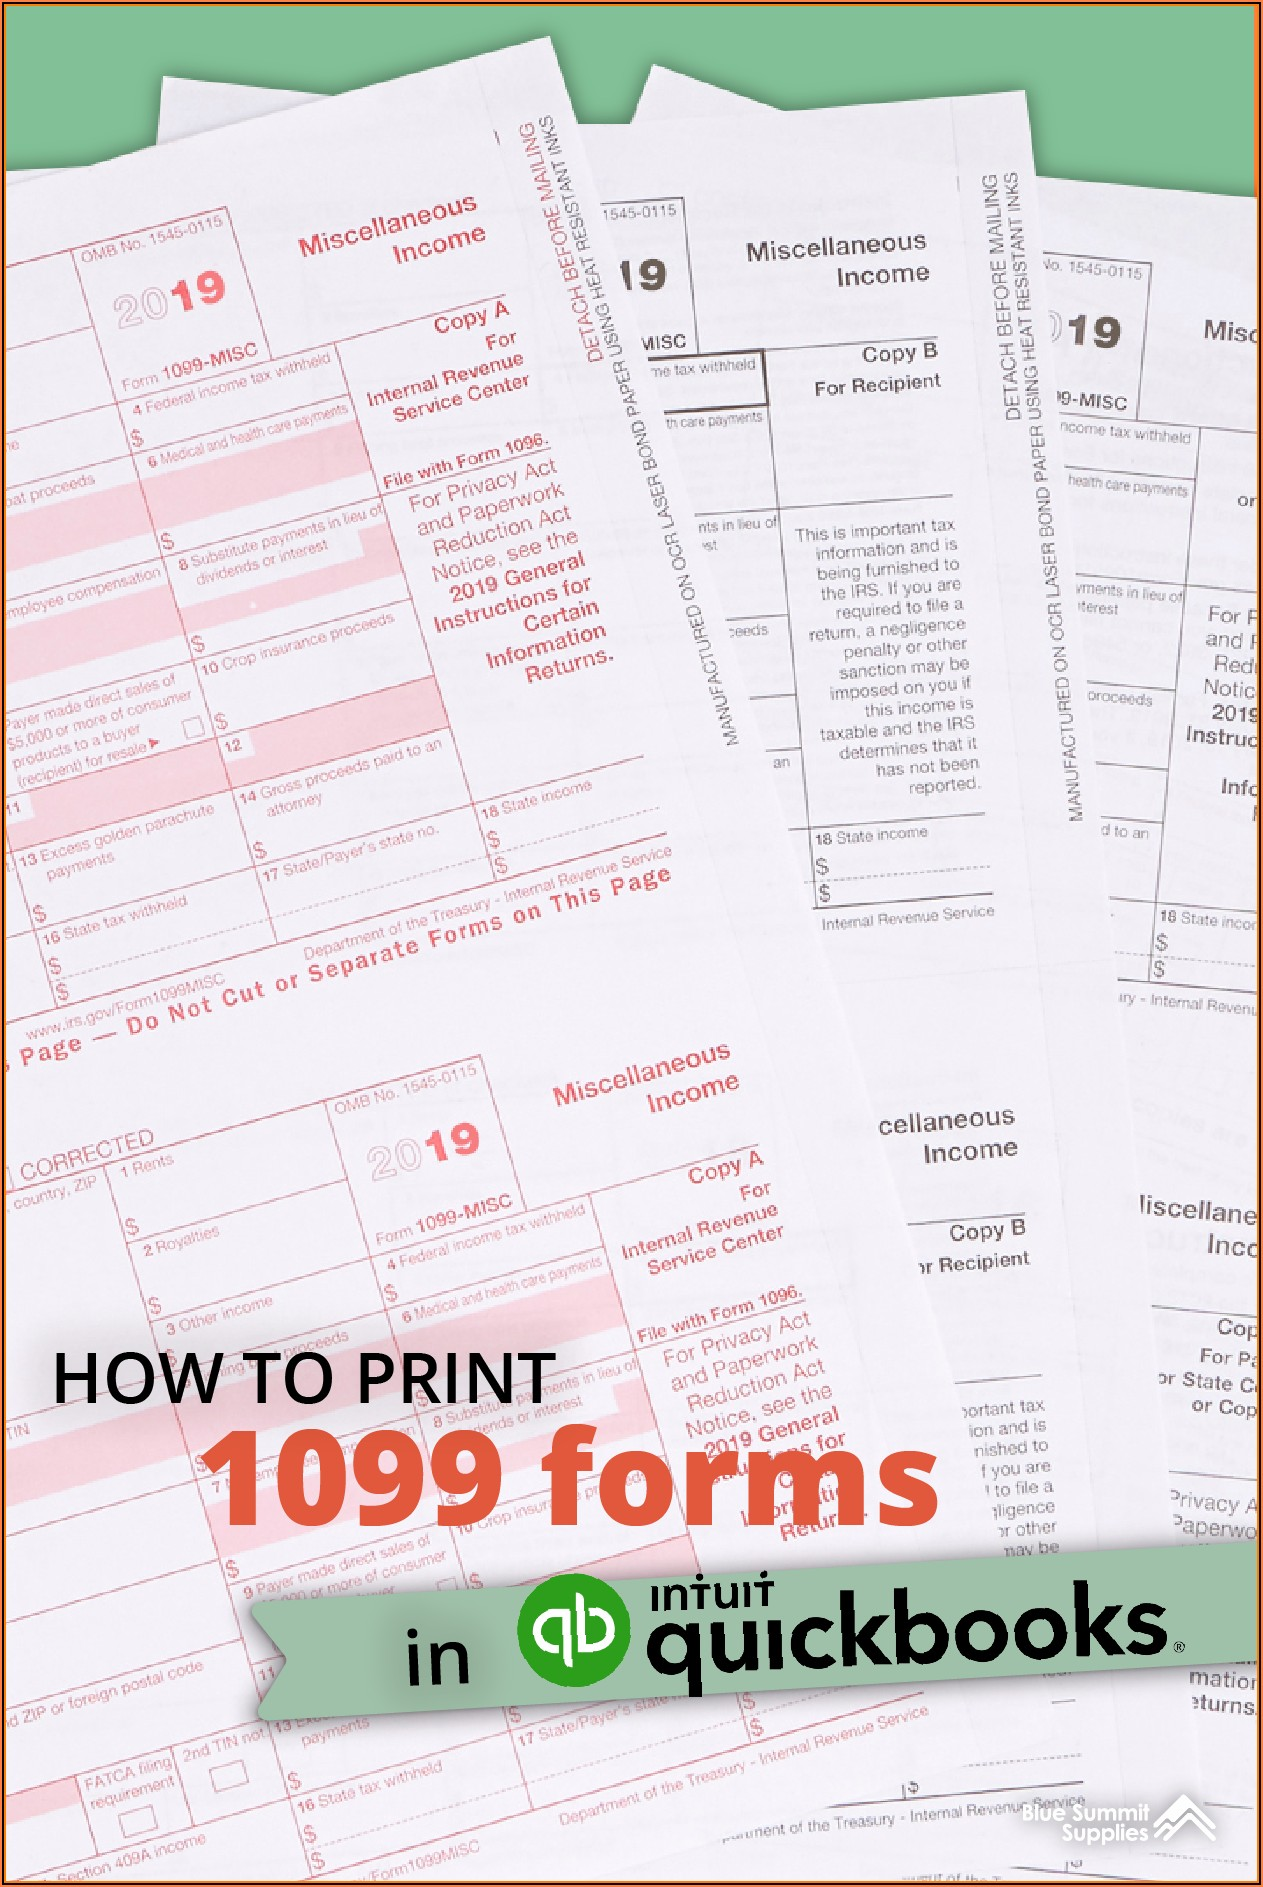 Print 1099 Forms In Quickbooks Online